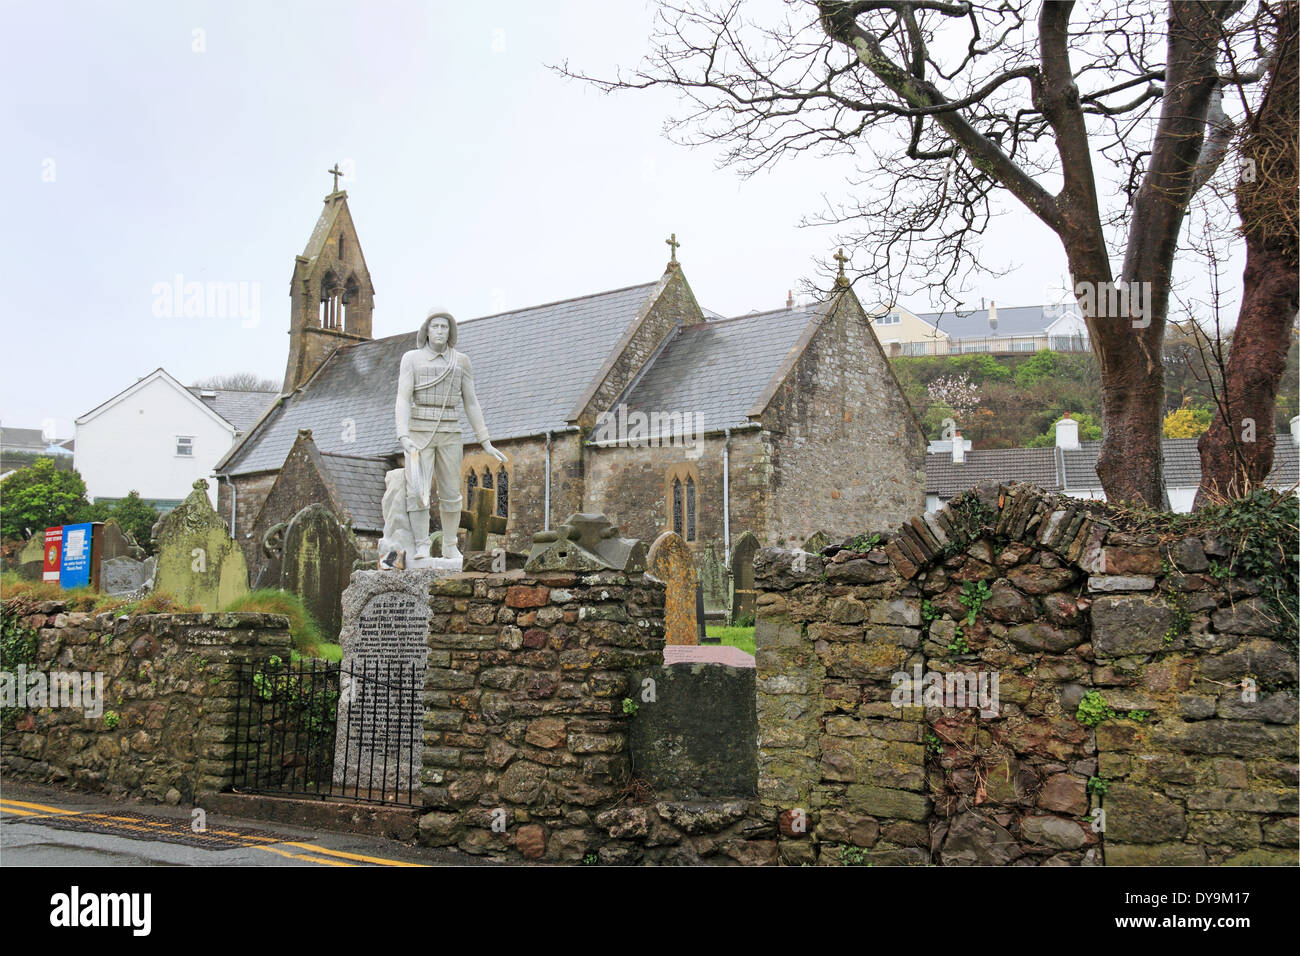 Lifeboat Crew Memorial, St Cattwg's church, Port Eynon, Gower Peninsula, Wales, Great Britain, United Kingdom, UK, Europe - Stock Image